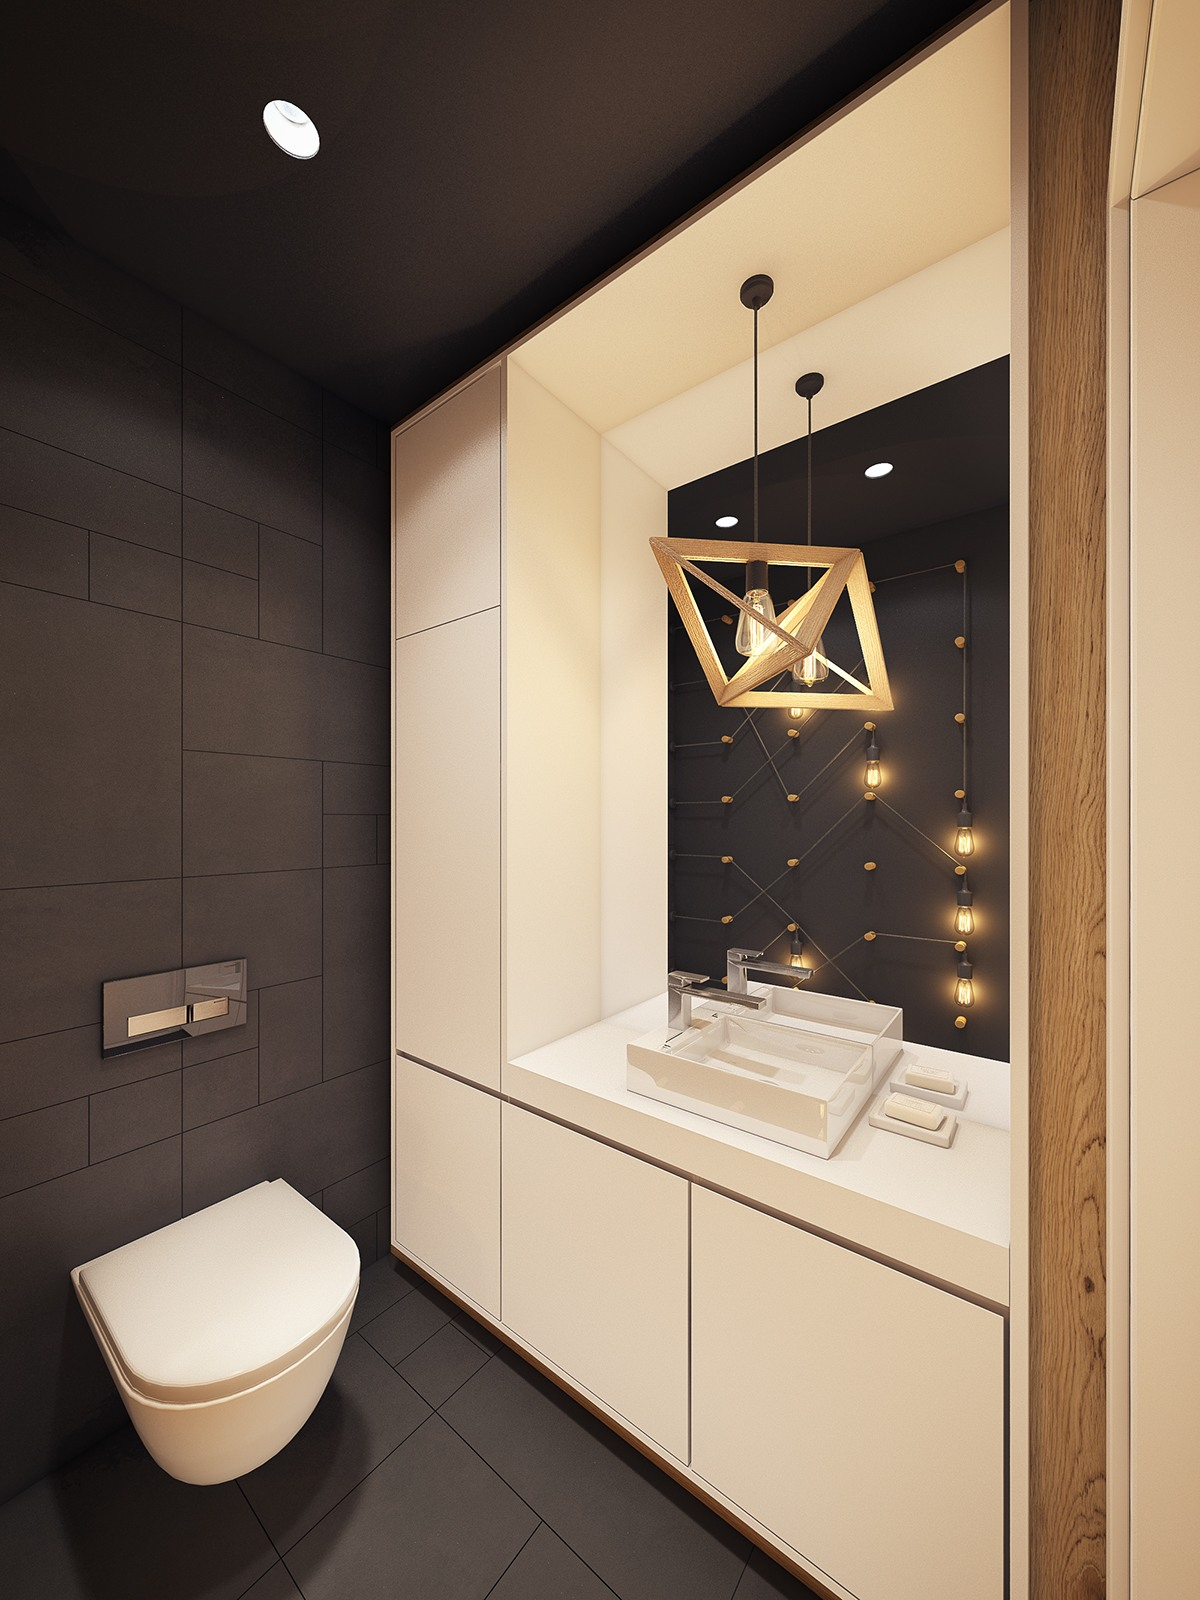 Inspiring Bathroom Lighting - A modern scandinavian inspired apartment with ingenius features